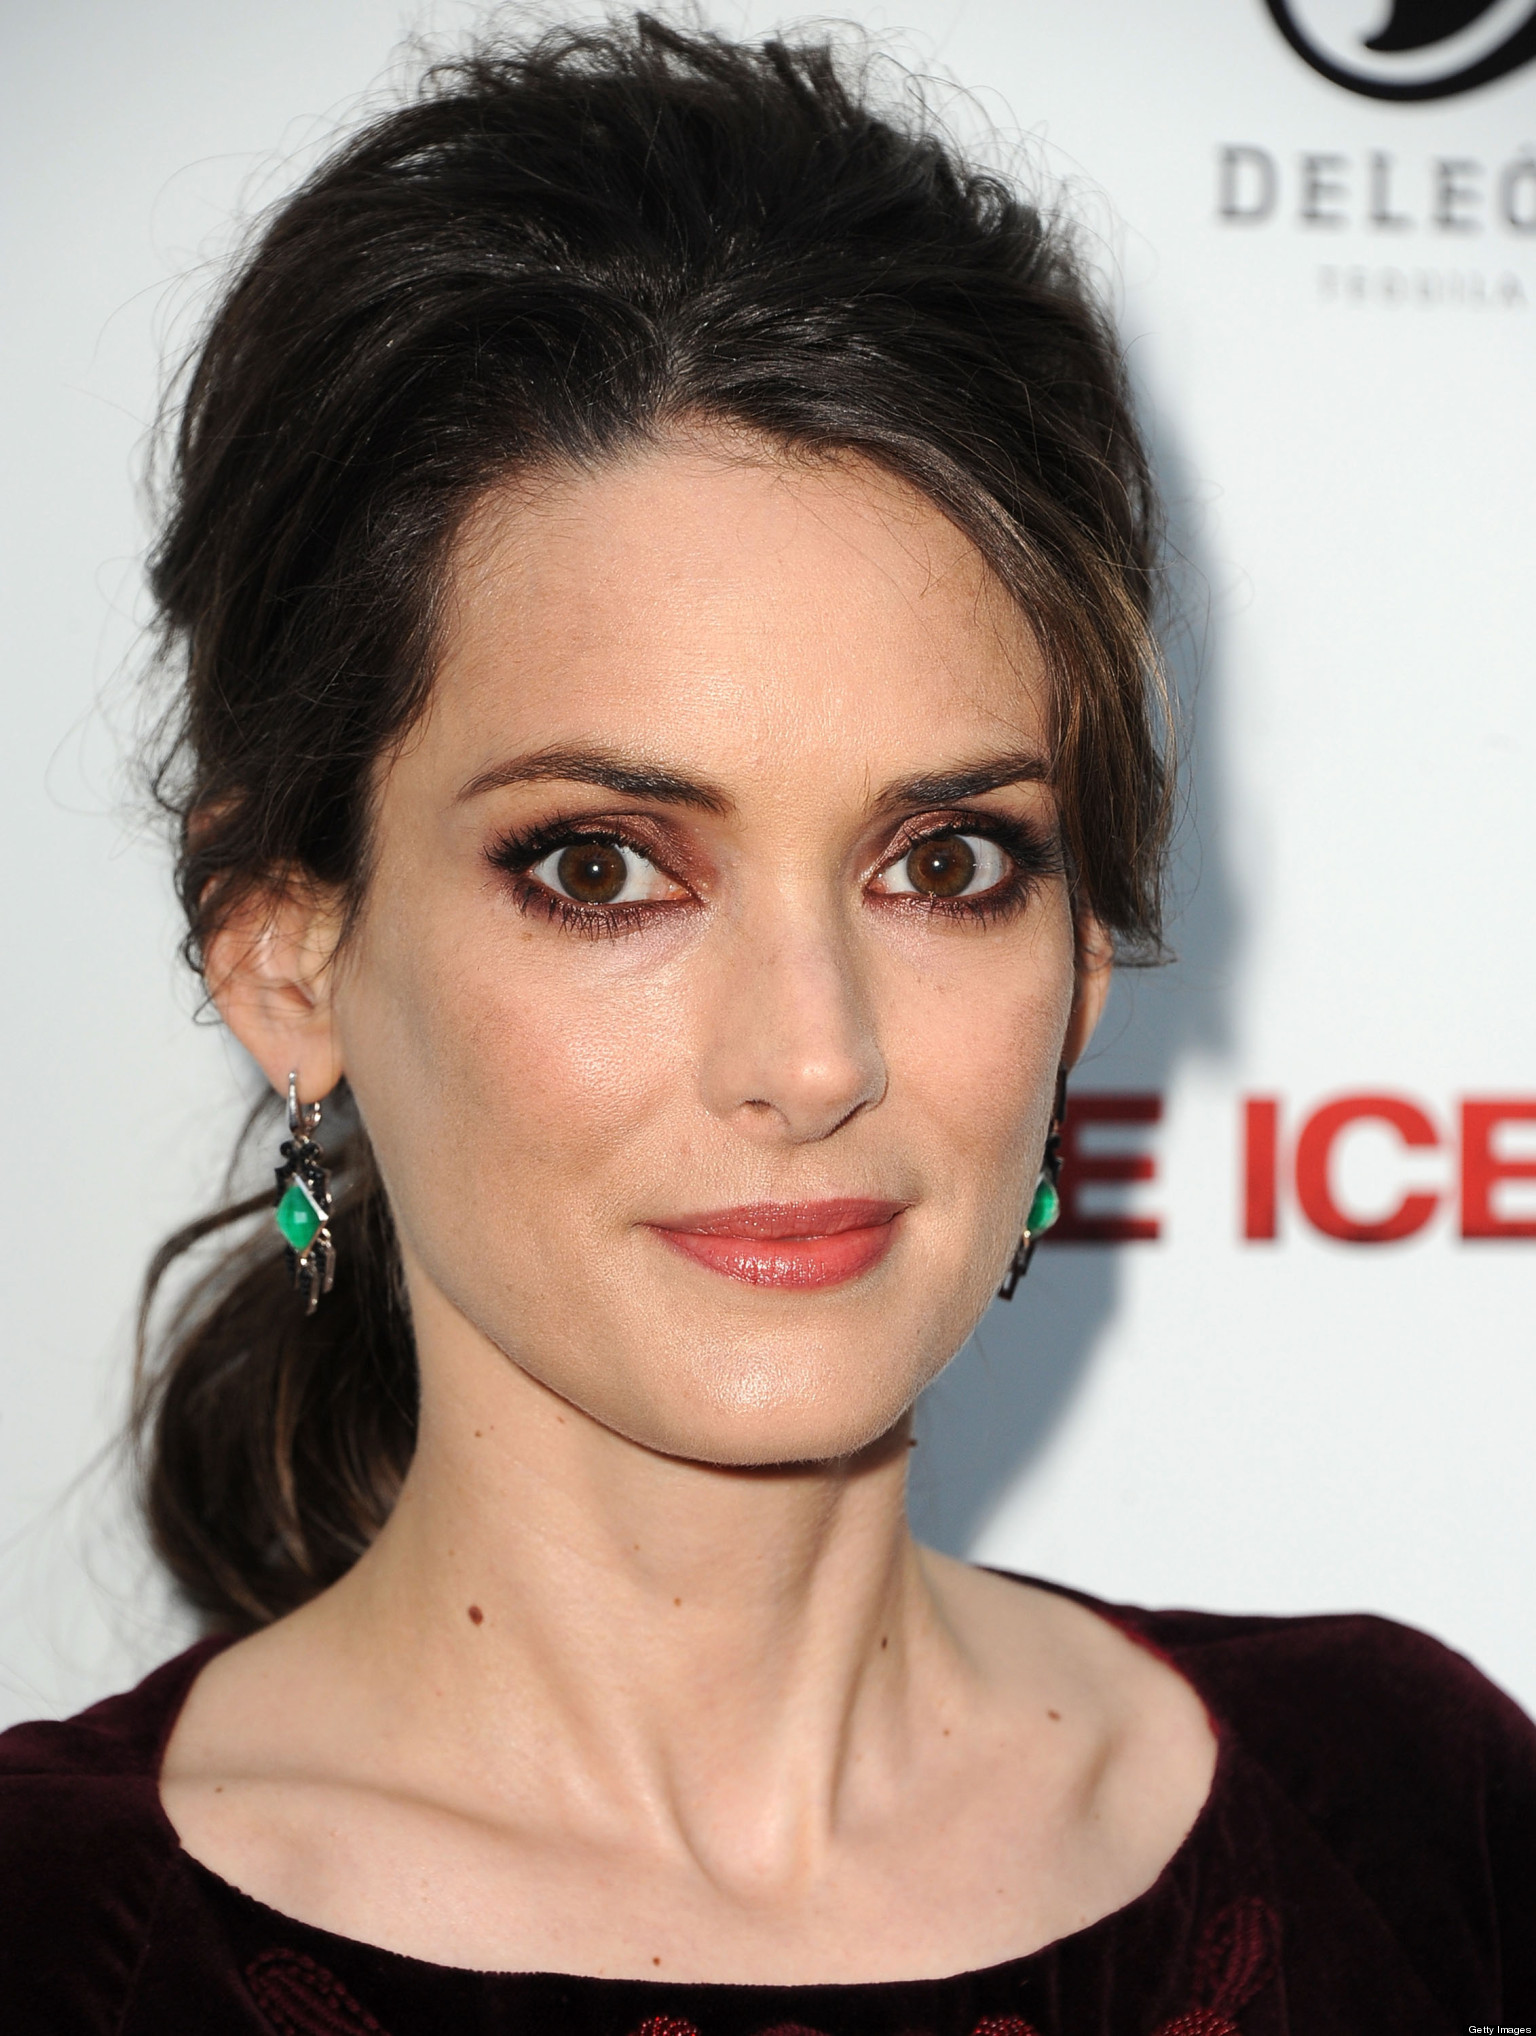 Winona Ryder: Net worth, House, Car, Salary, Husband ...